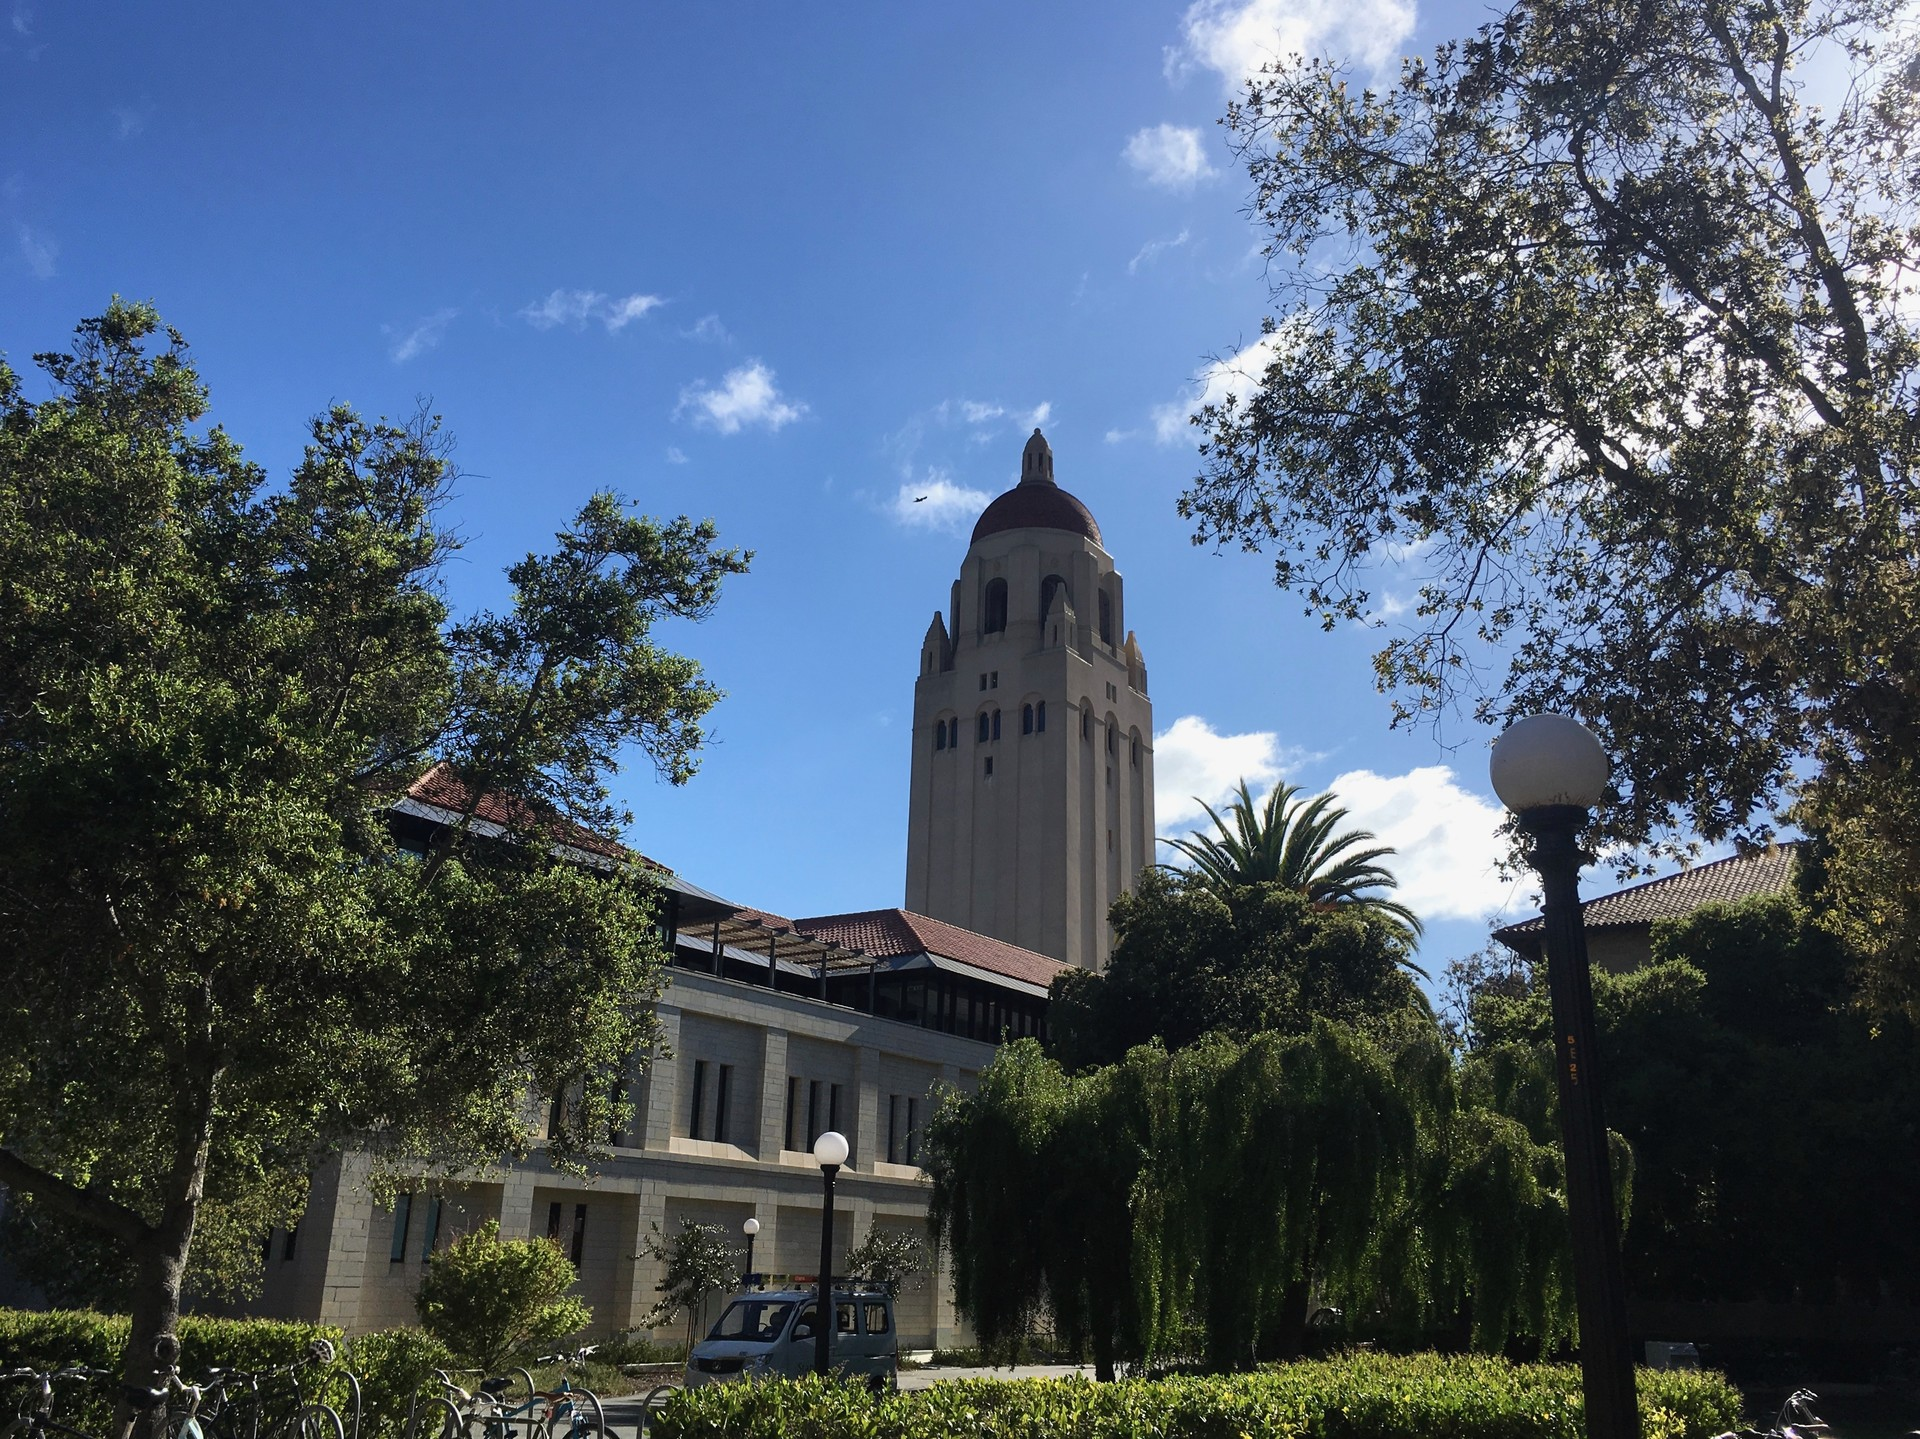 The Hoover Tower on Stanford University campus houses the Hoover Institution Library and Archives, which were founded by Herbert Hoover before he became President of the United States.